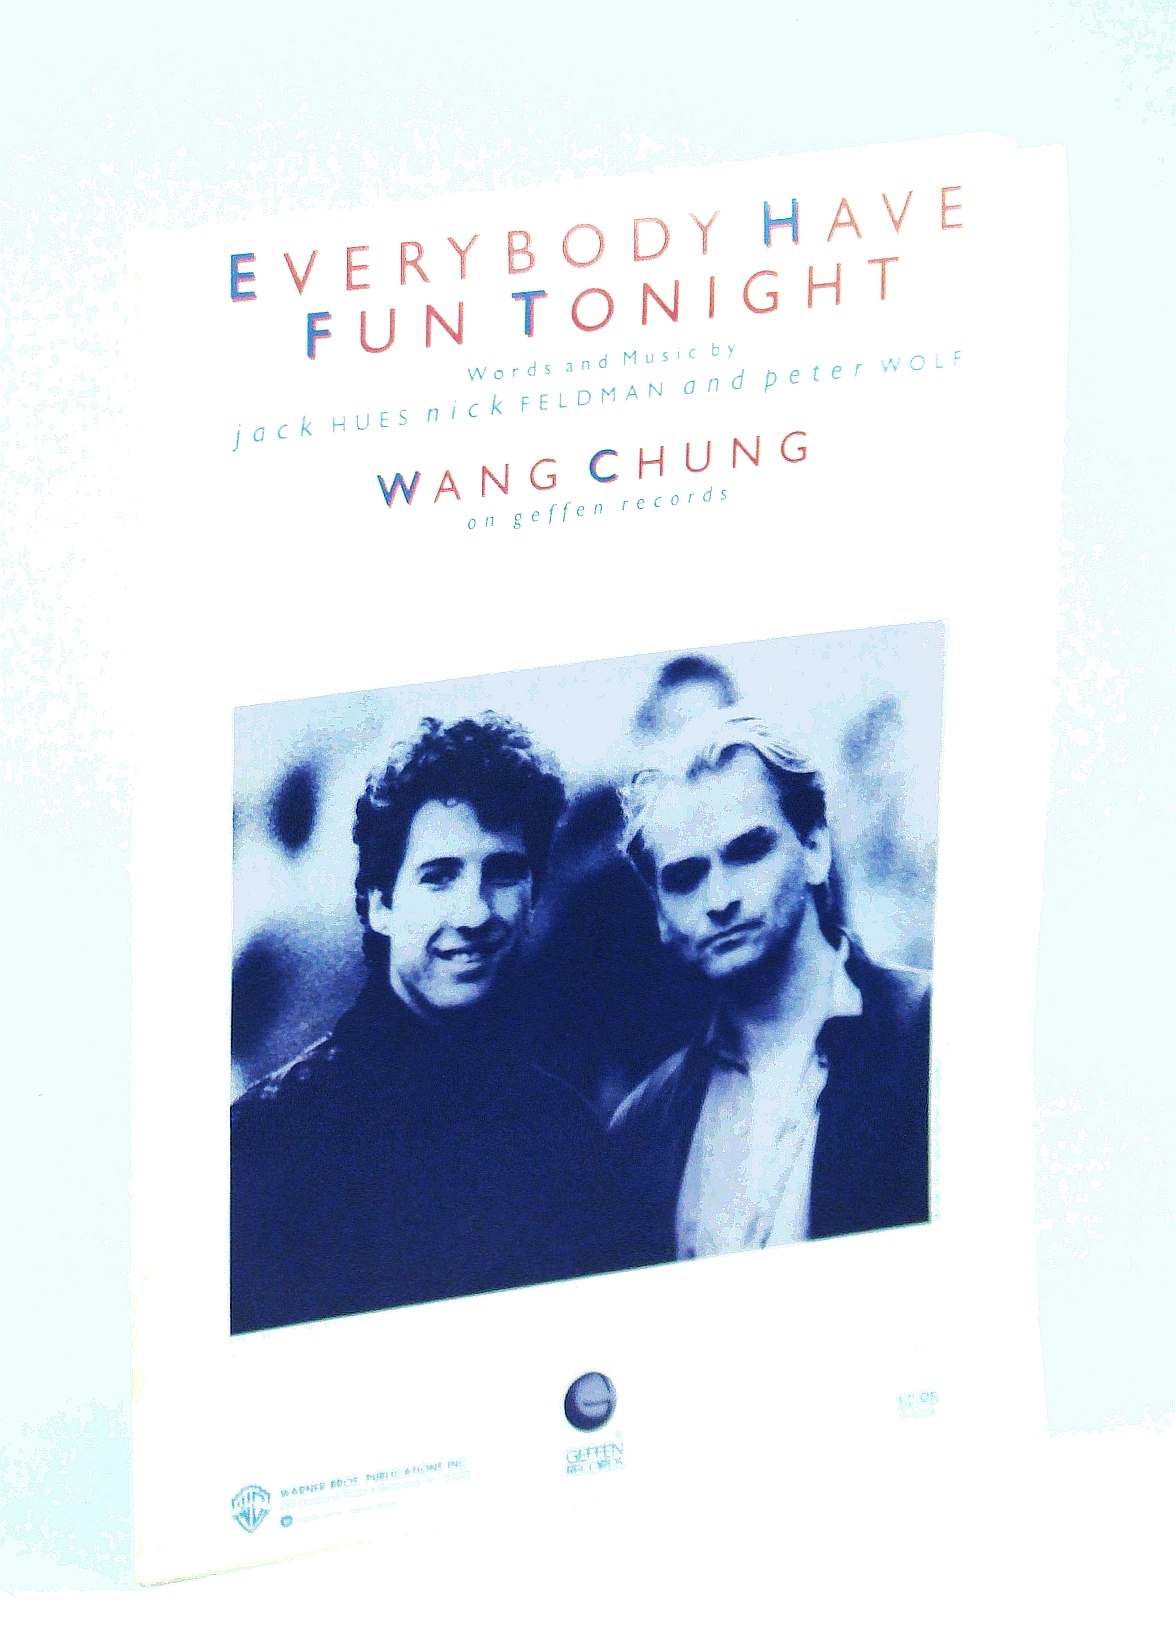 Image for Everybody Have Fun Tonight as recorded by Wang Chung